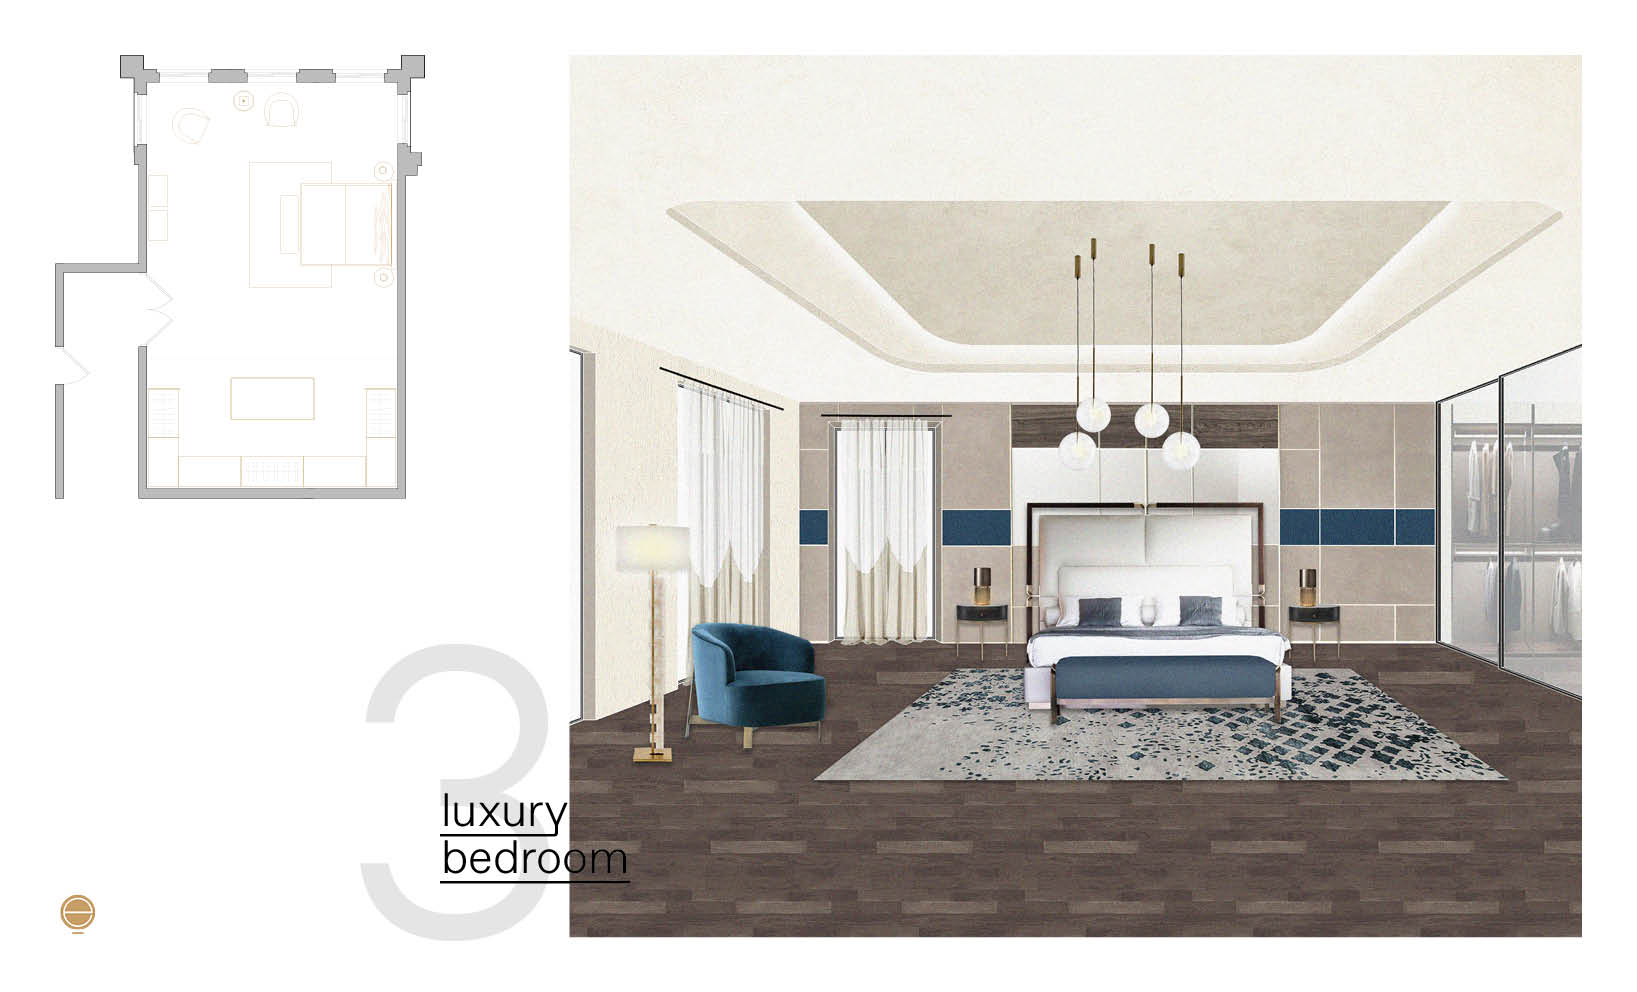 luxury modern bedroom design composition with blue details designed by Esperiri Milano